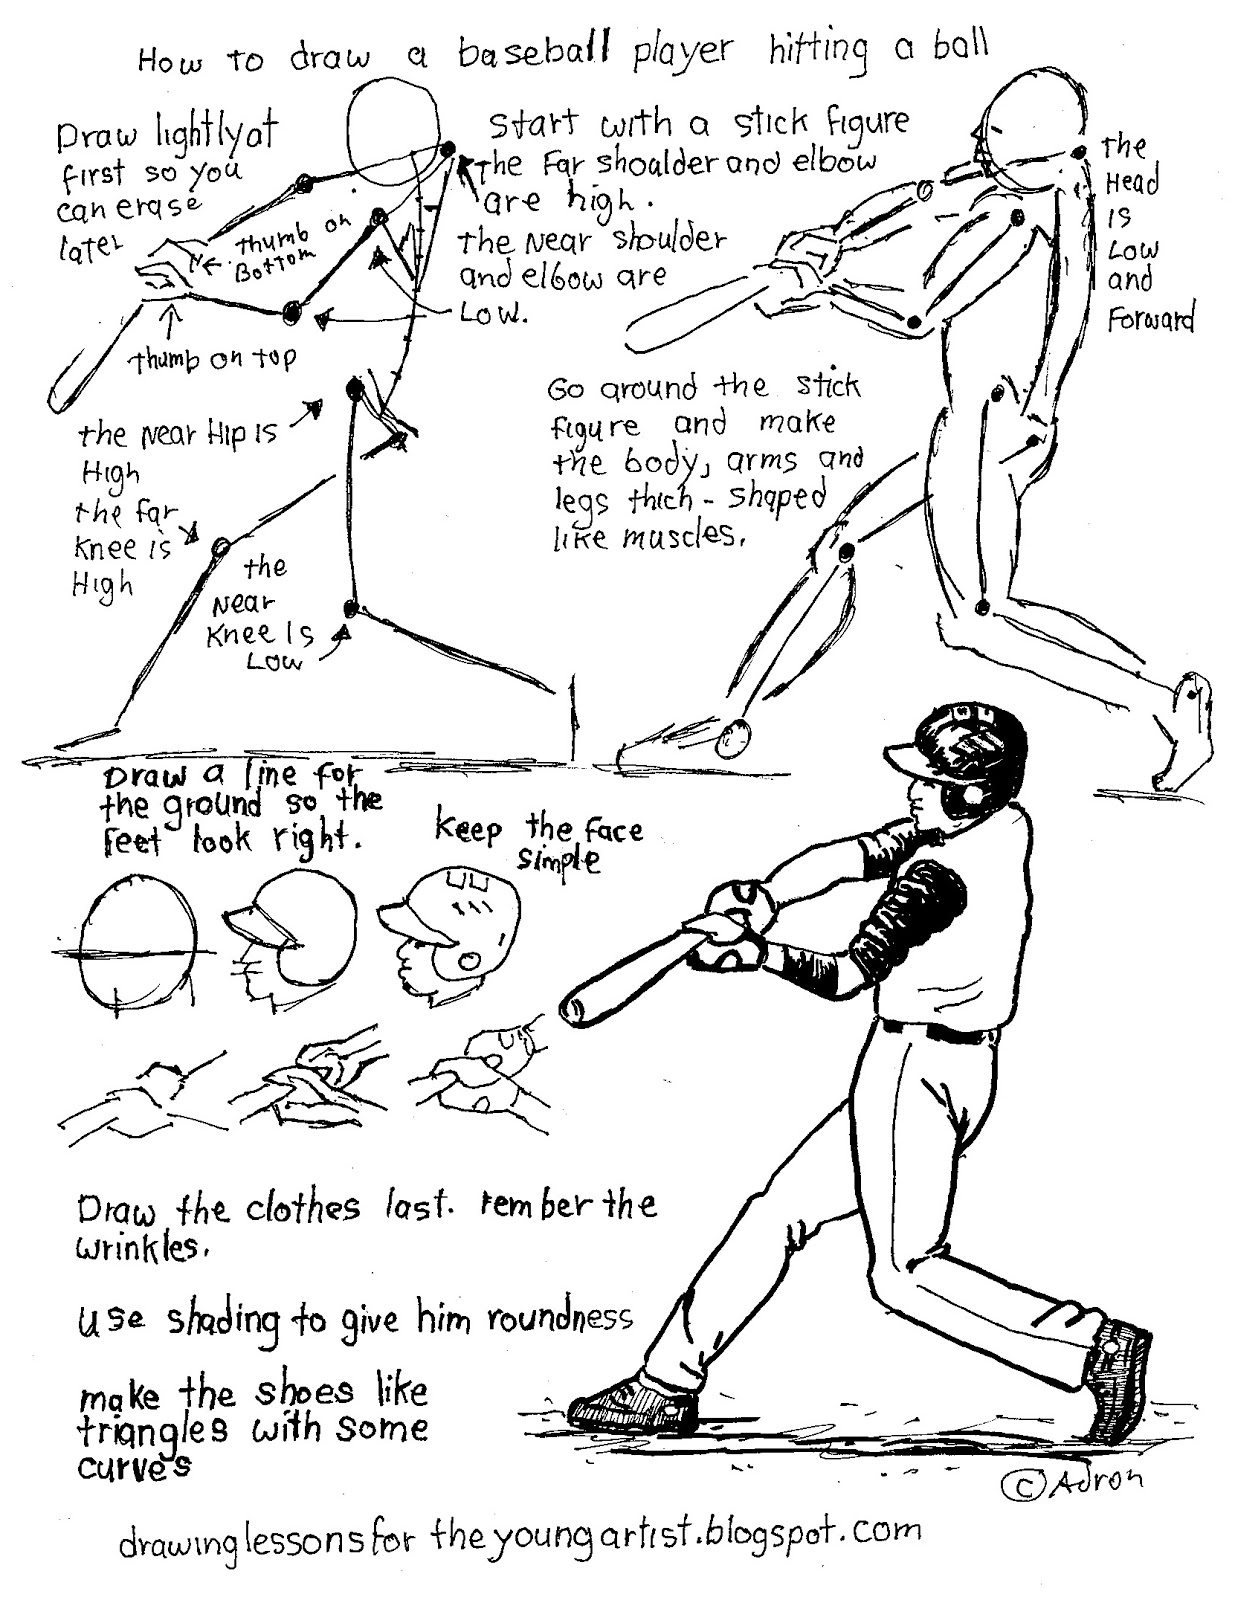 How To Draw Worksheets For The Young Artist How To Draw A Baseball